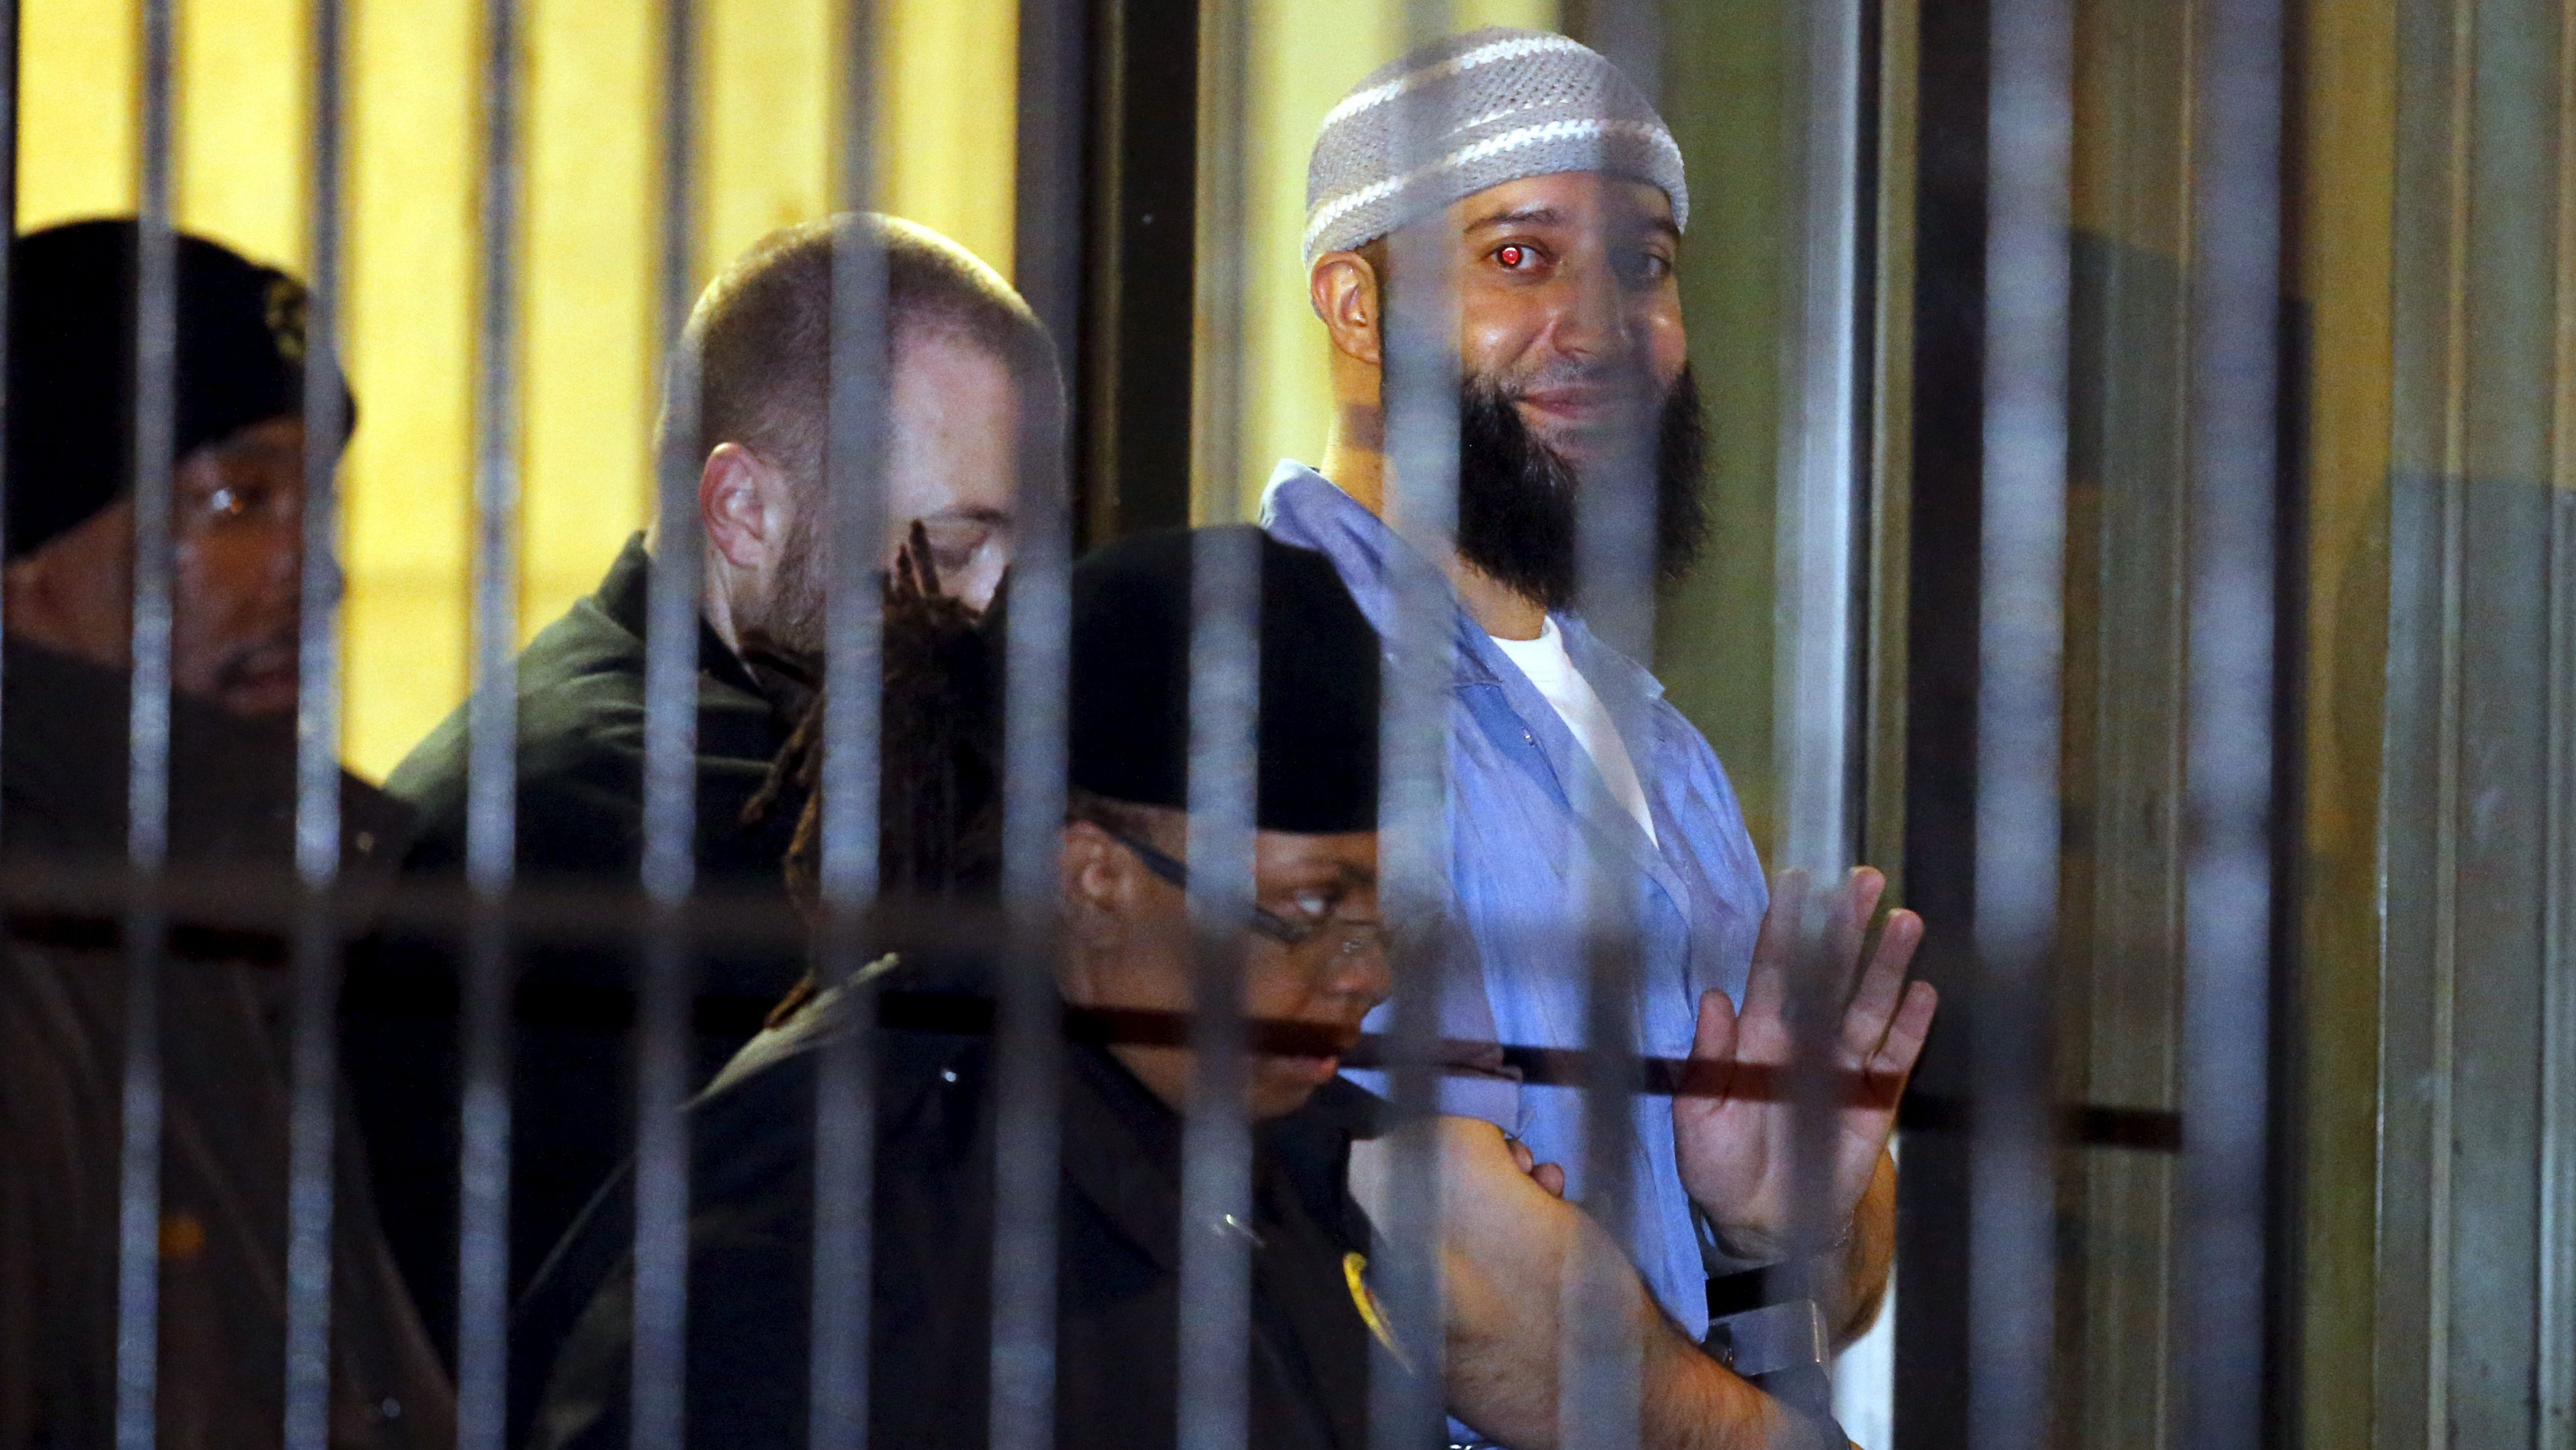 The trailer for HBO's Adnan Syed documentary looks weirdly